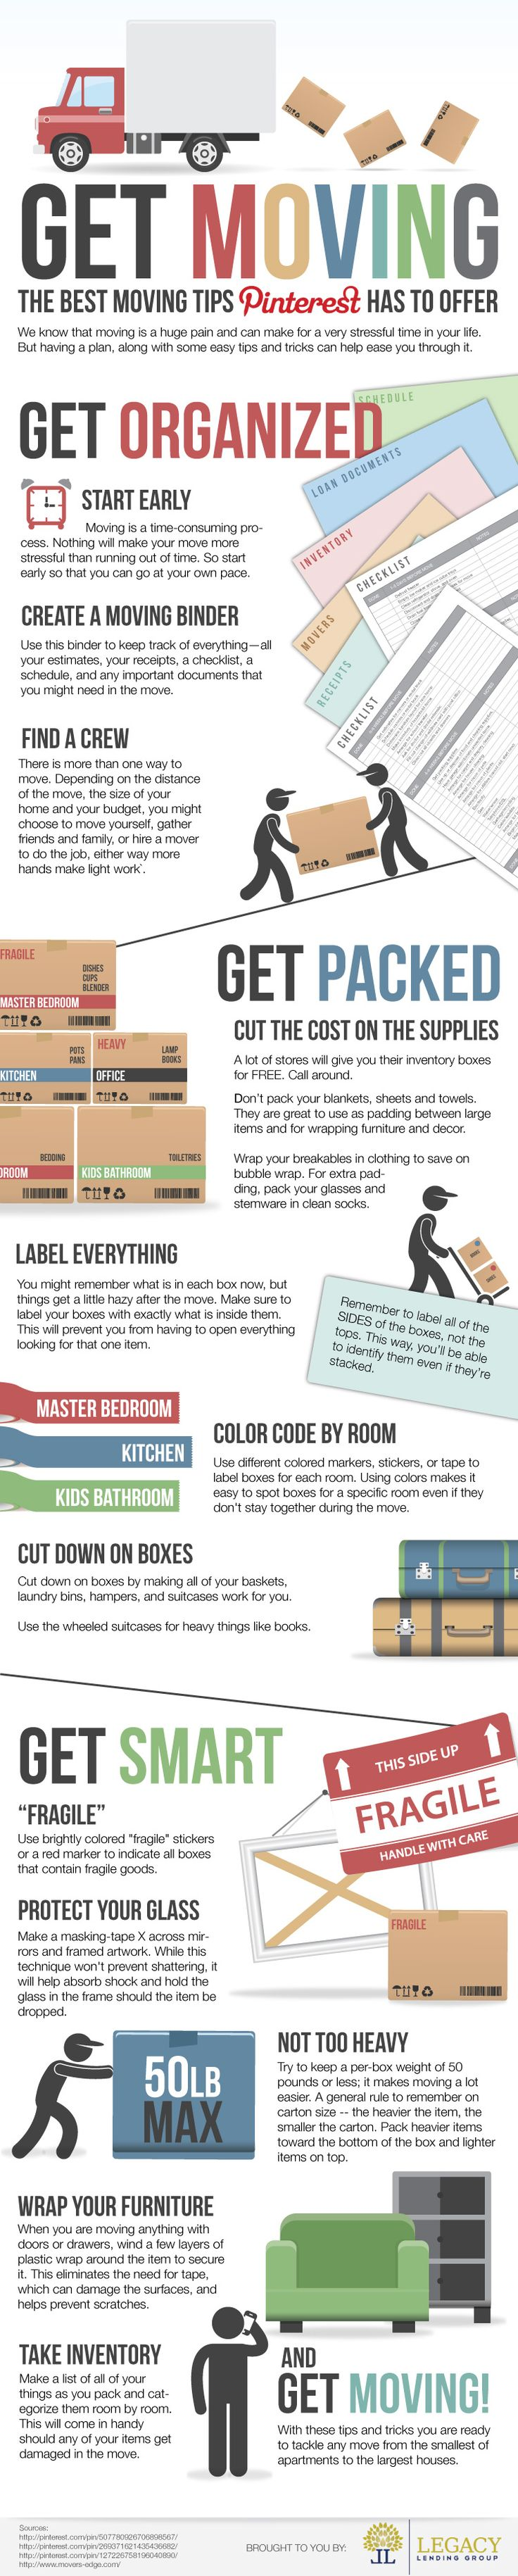 Infographic: The Best Moving Tips Pinterest Can Offer